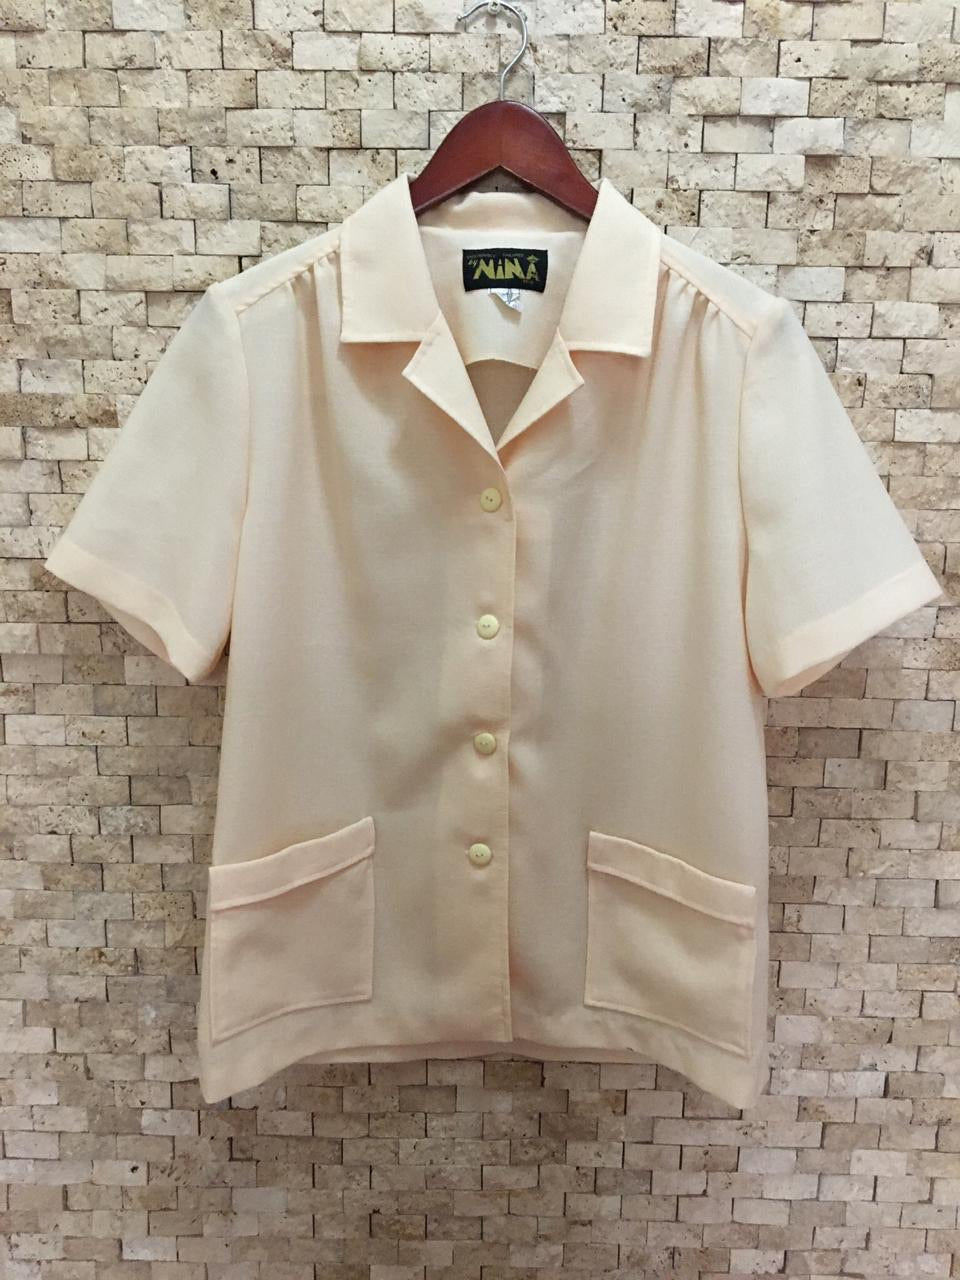 Vintage short sleeved suit